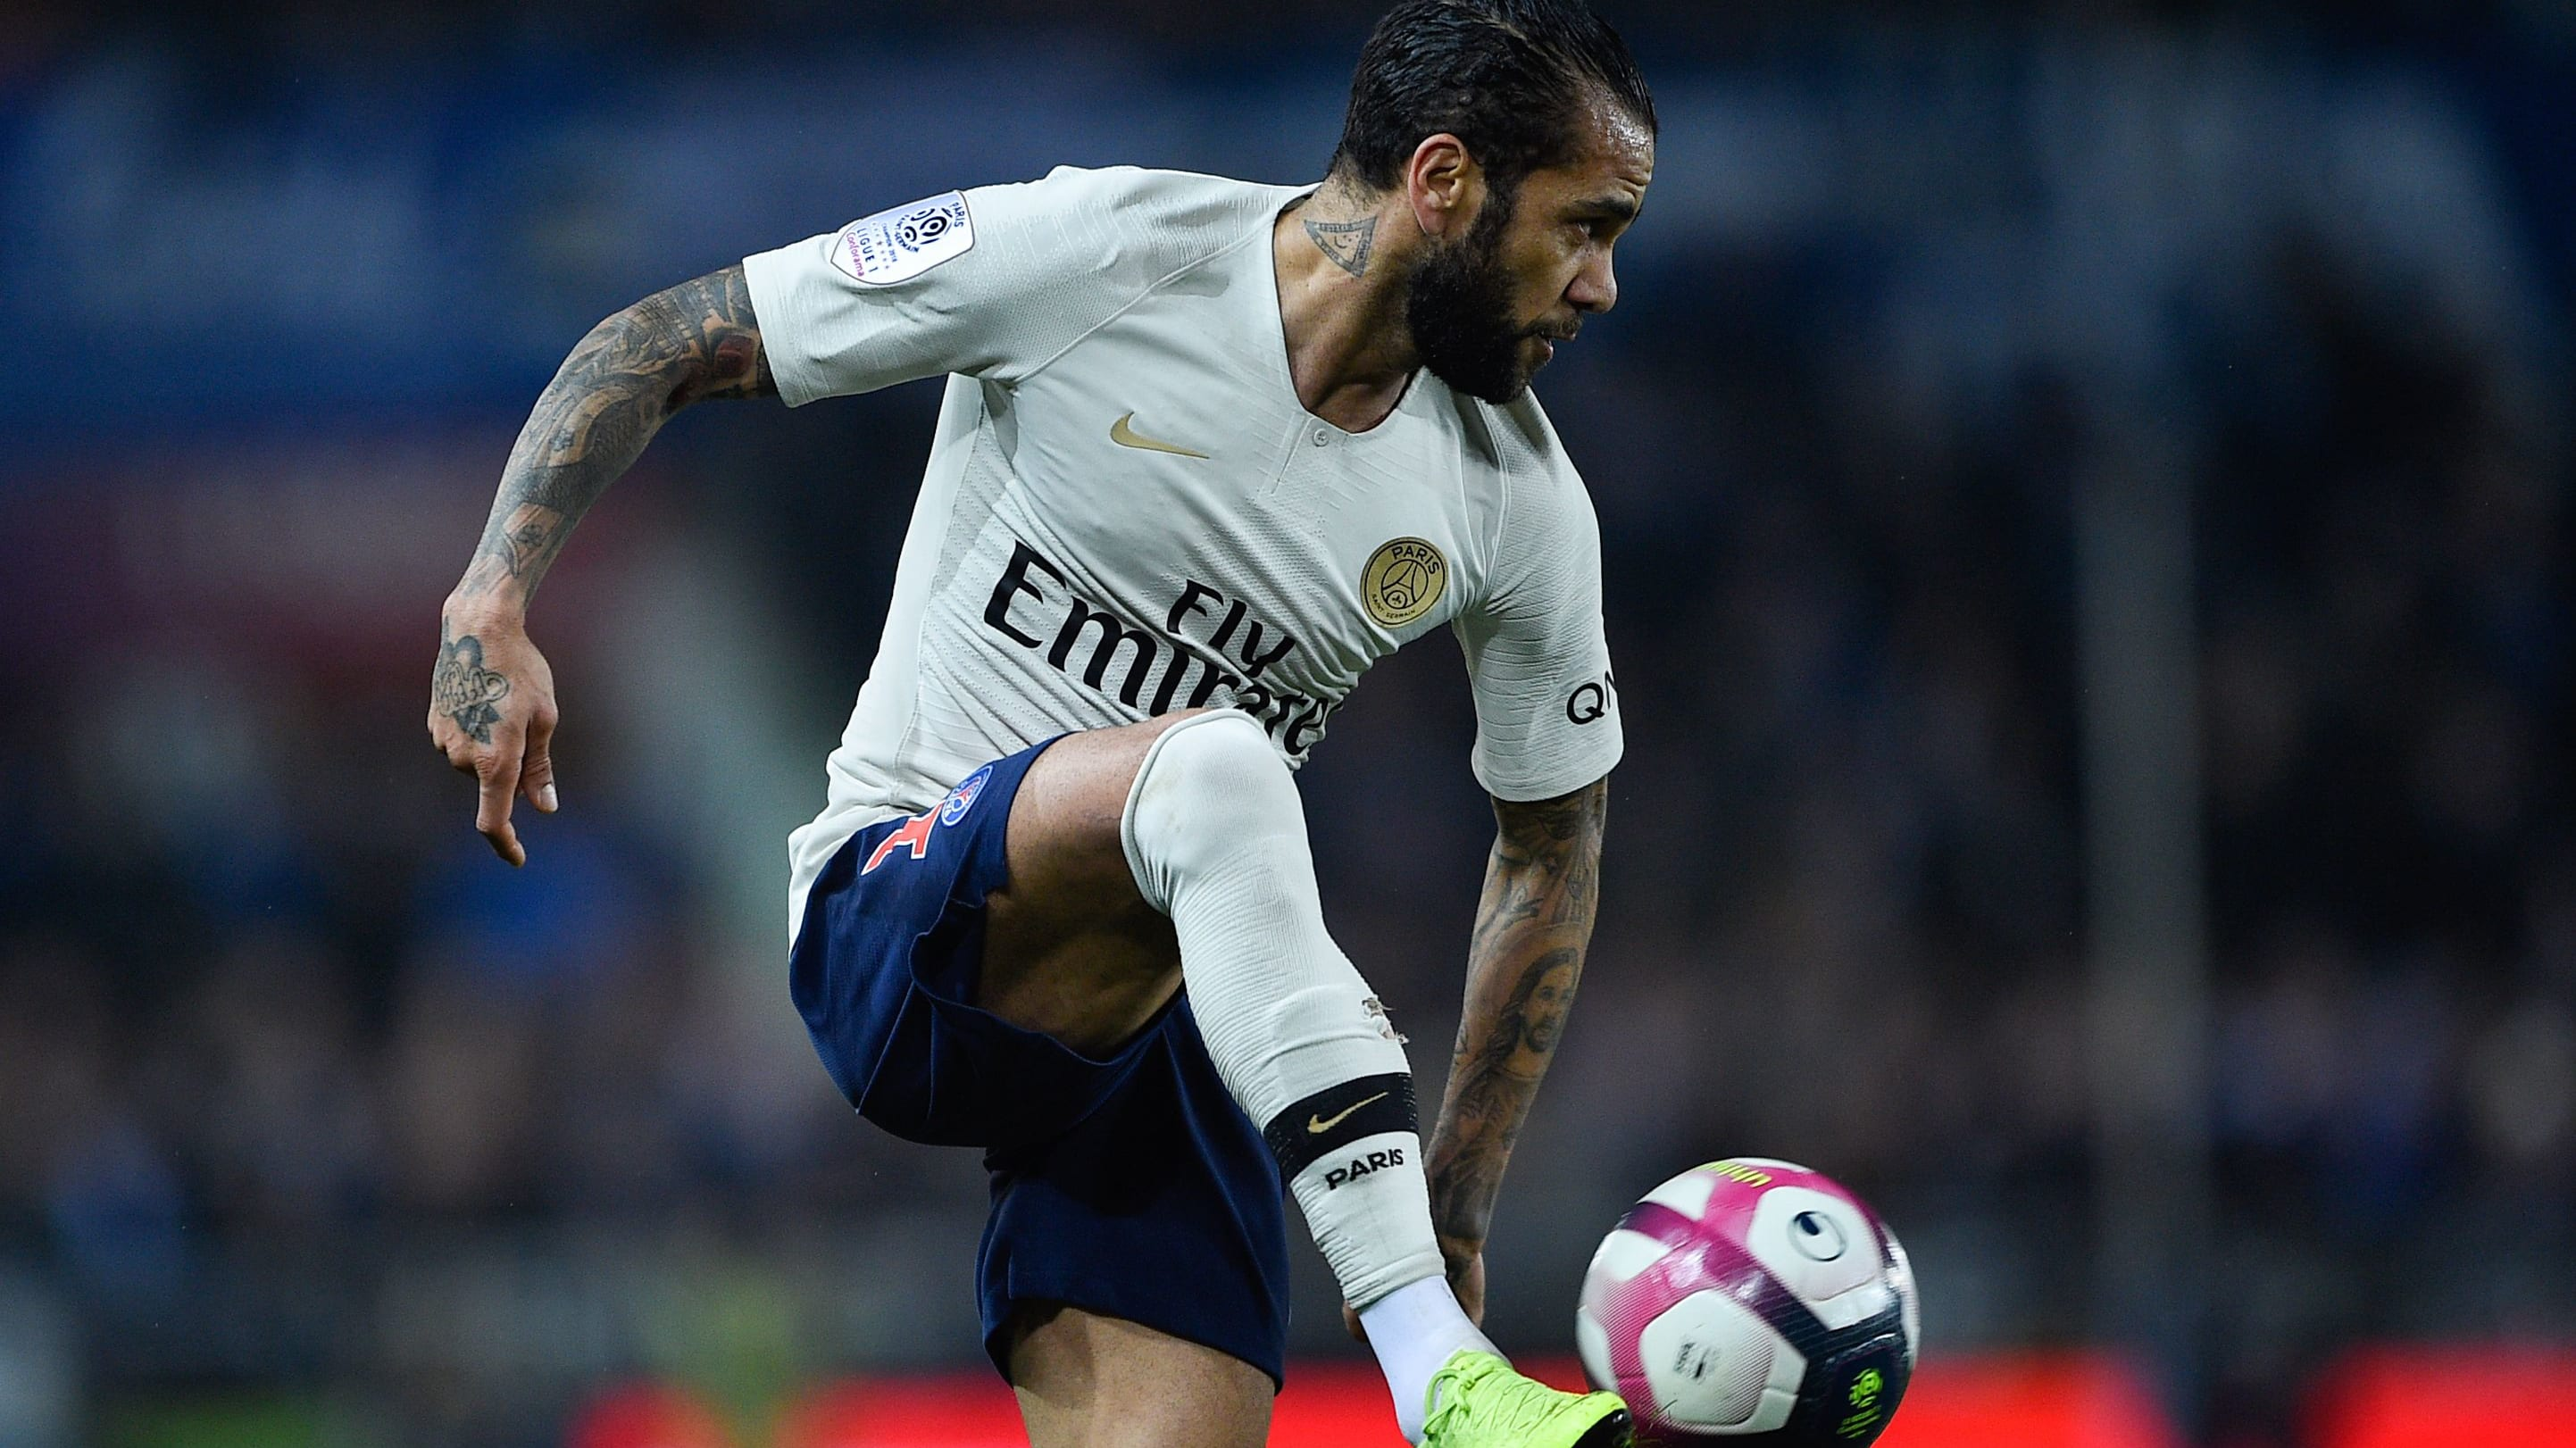 Paris Saint-Germain's Brazilian defender Dani Alves controls the ball during the French L1 football match between Strasbourg and Paris Saint-Germain (PSG) at the Stade de la Meinau stadium, in Strasbourg, on December 5, 2018. (Photo by JEAN-CHRISTOPHE VERHAEGEN / AFP)        (Photo credit should read JEAN-CHRISTOPHE VERHAEGEN/AFP/Getty Images)